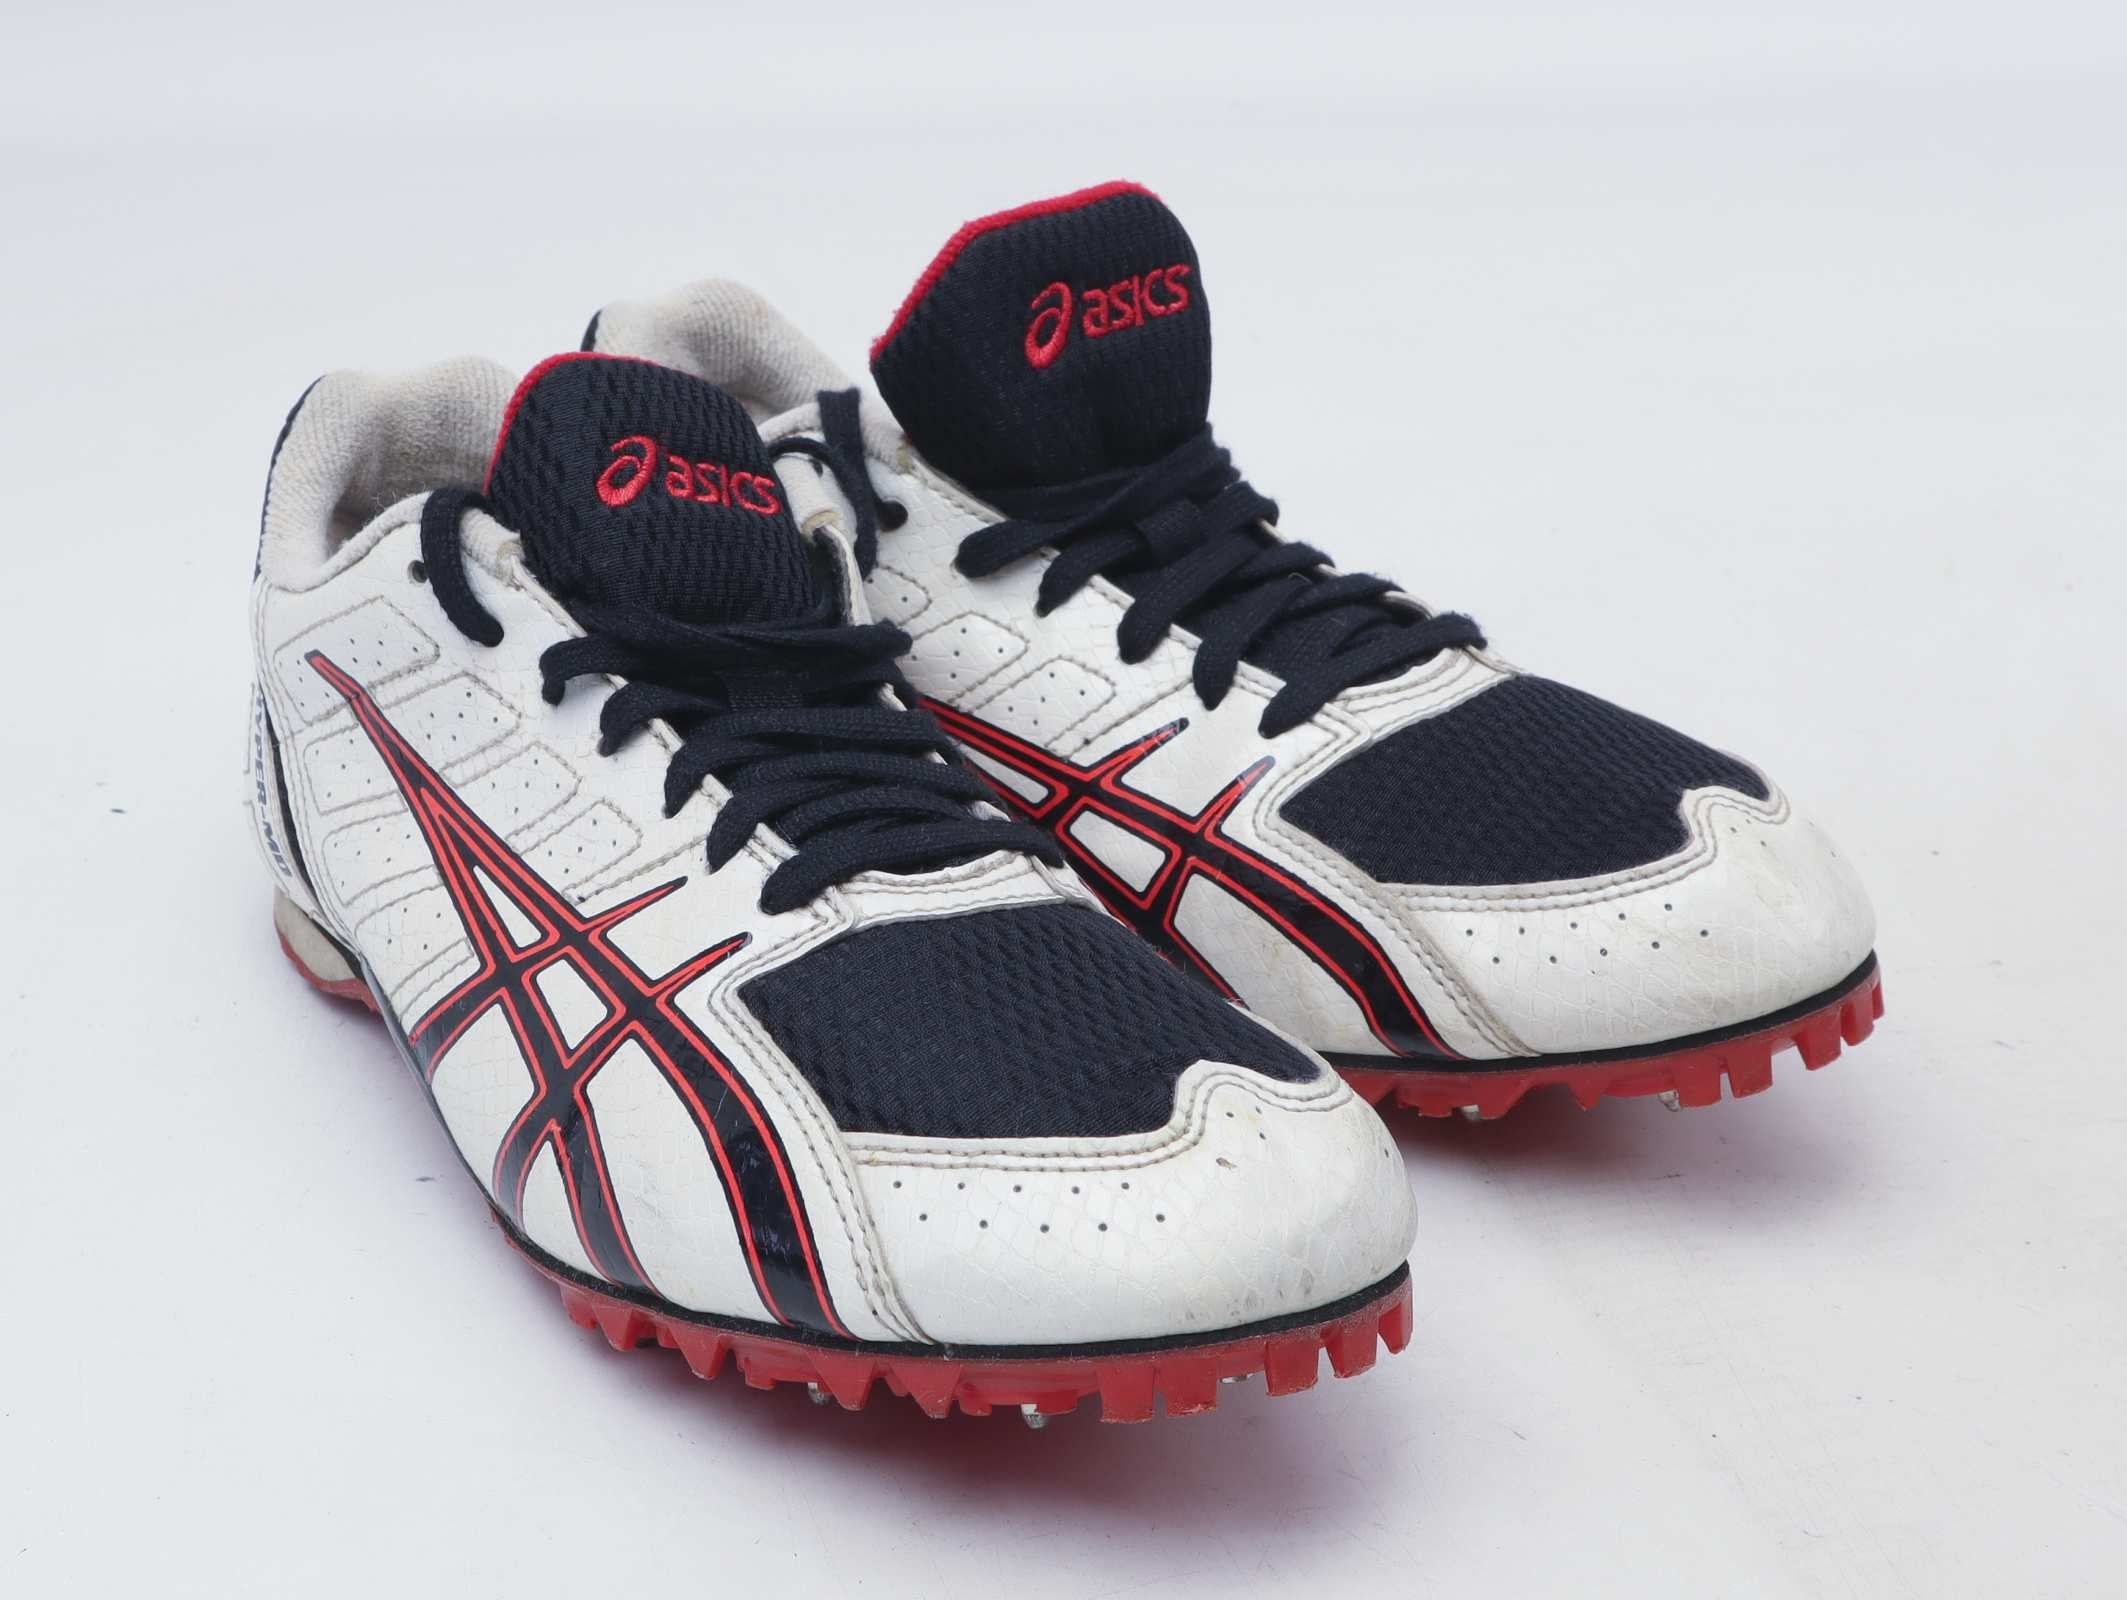 Asics Mens Uk Size 8 Multi Coloured Golf Shoes Trainers Shoes Trainers Mens Trainers Golf Shoes